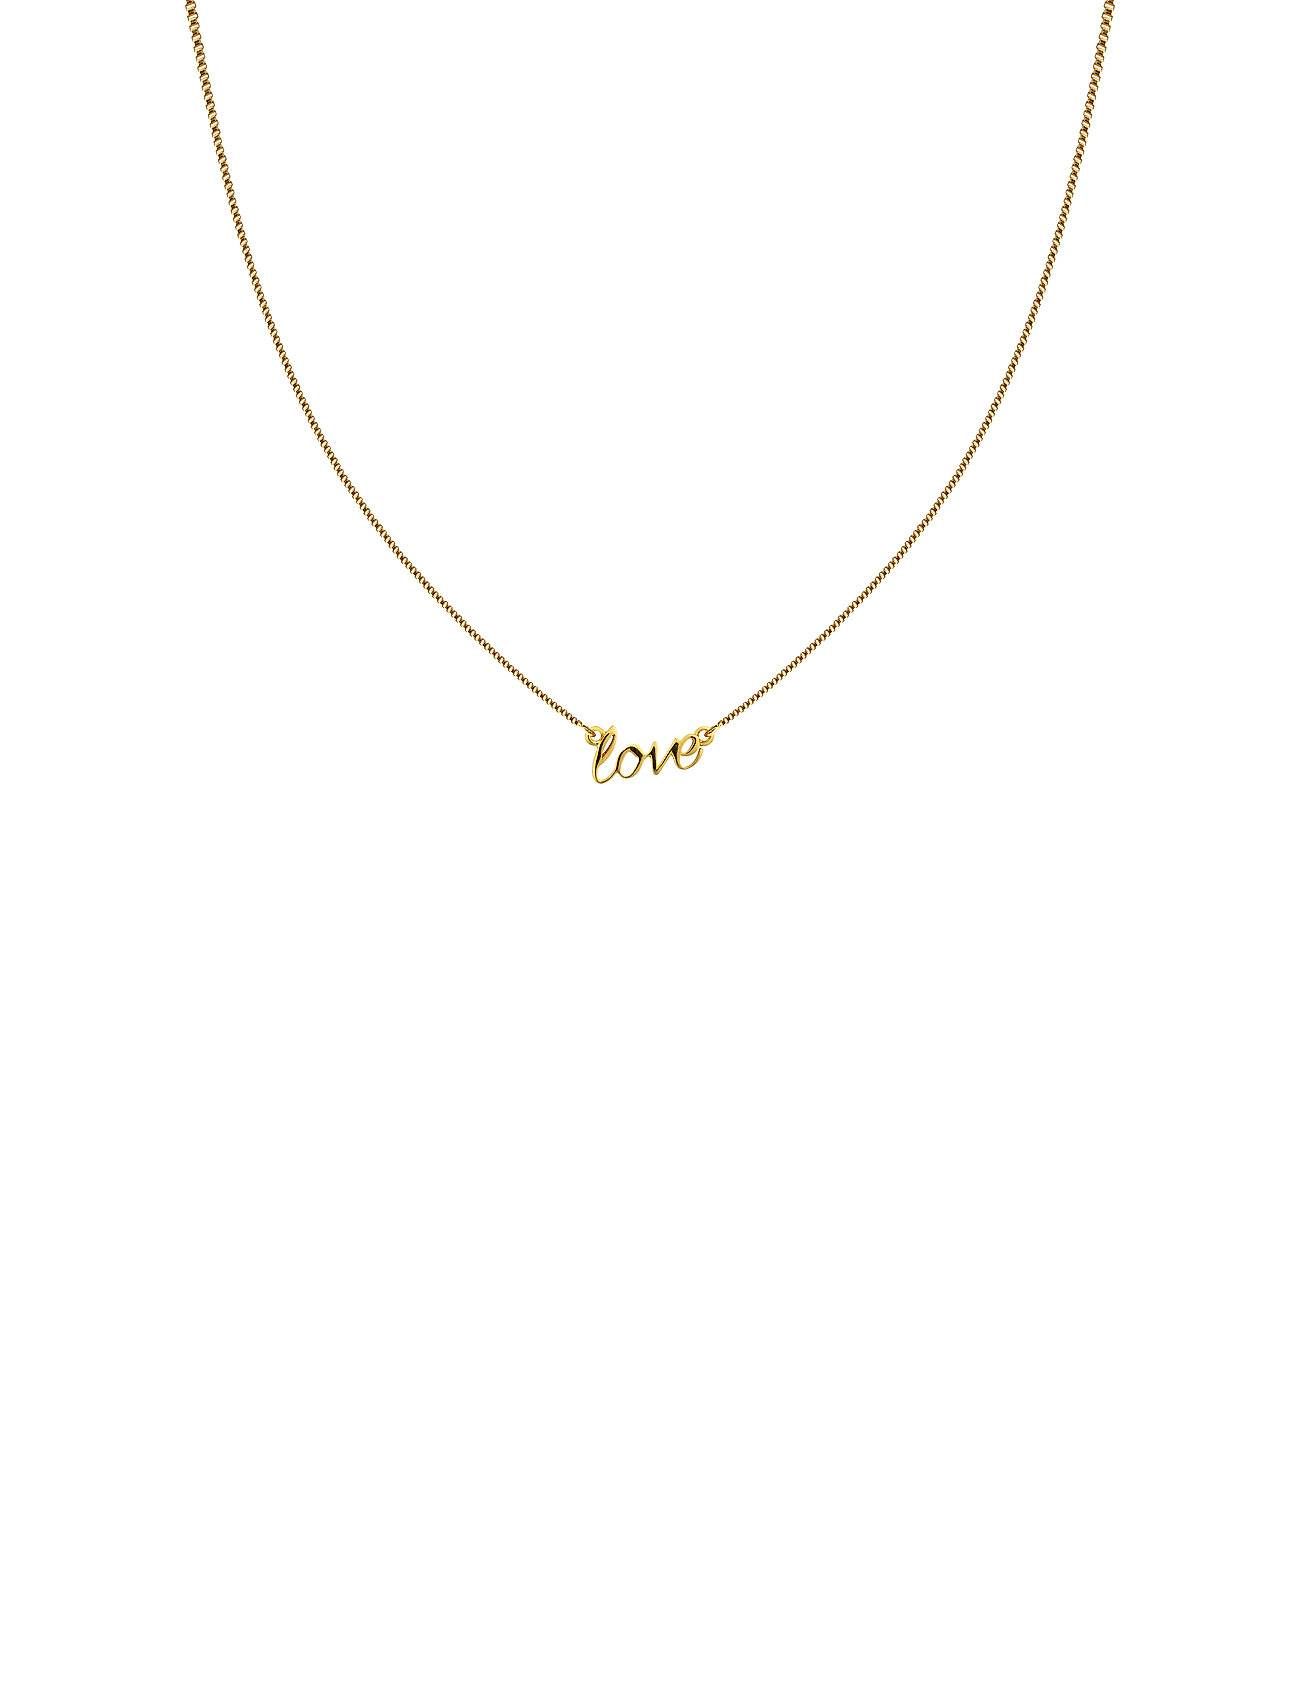 Syster P Snap Necklace Love Gold Accessories Jewellery Necklaces Dainty Necklaces Kulta Syster P